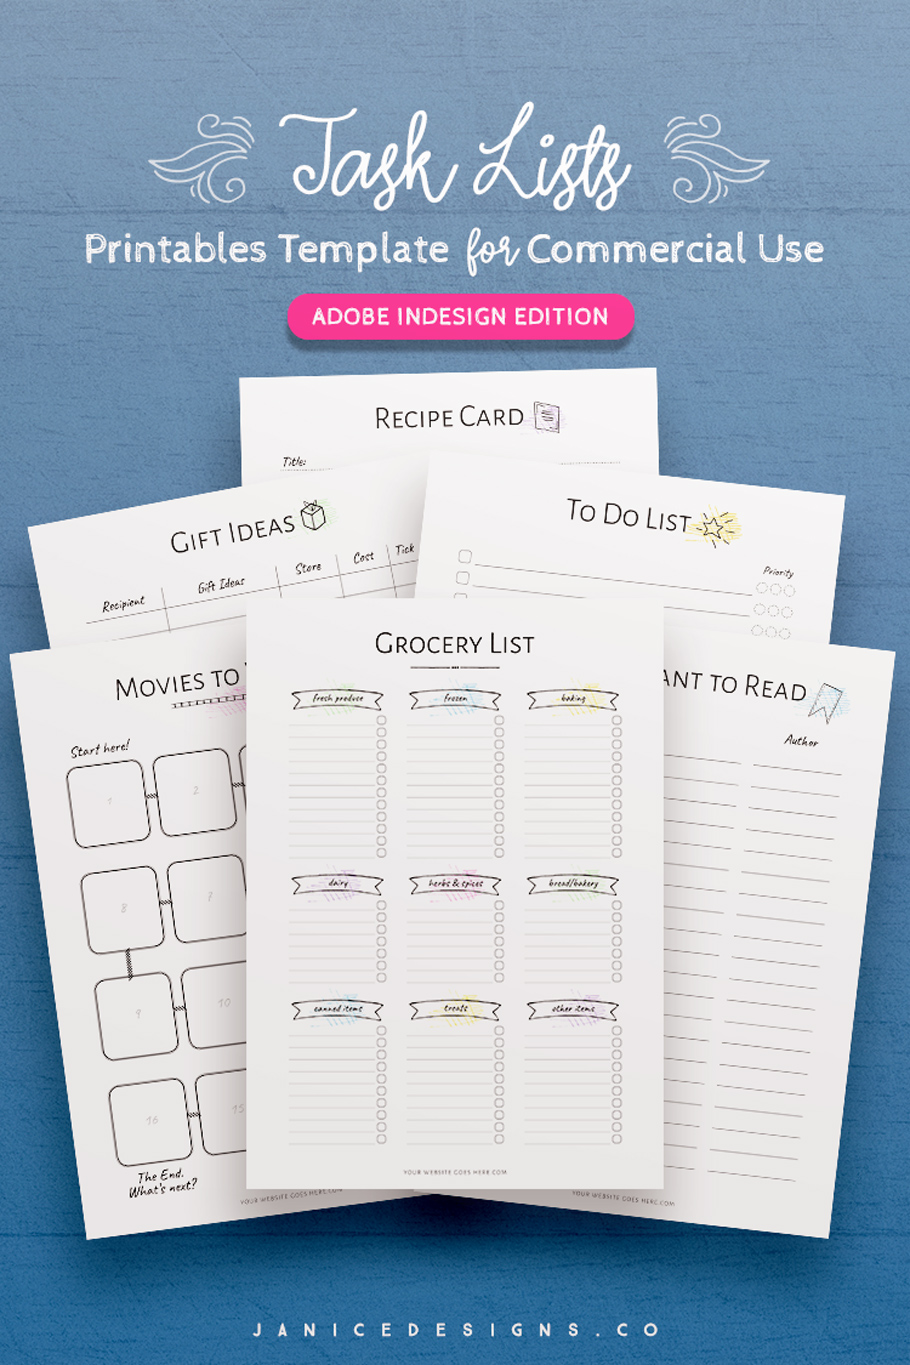 7-in-1 Bundle InDesign Templates for Commercial Use example image 8